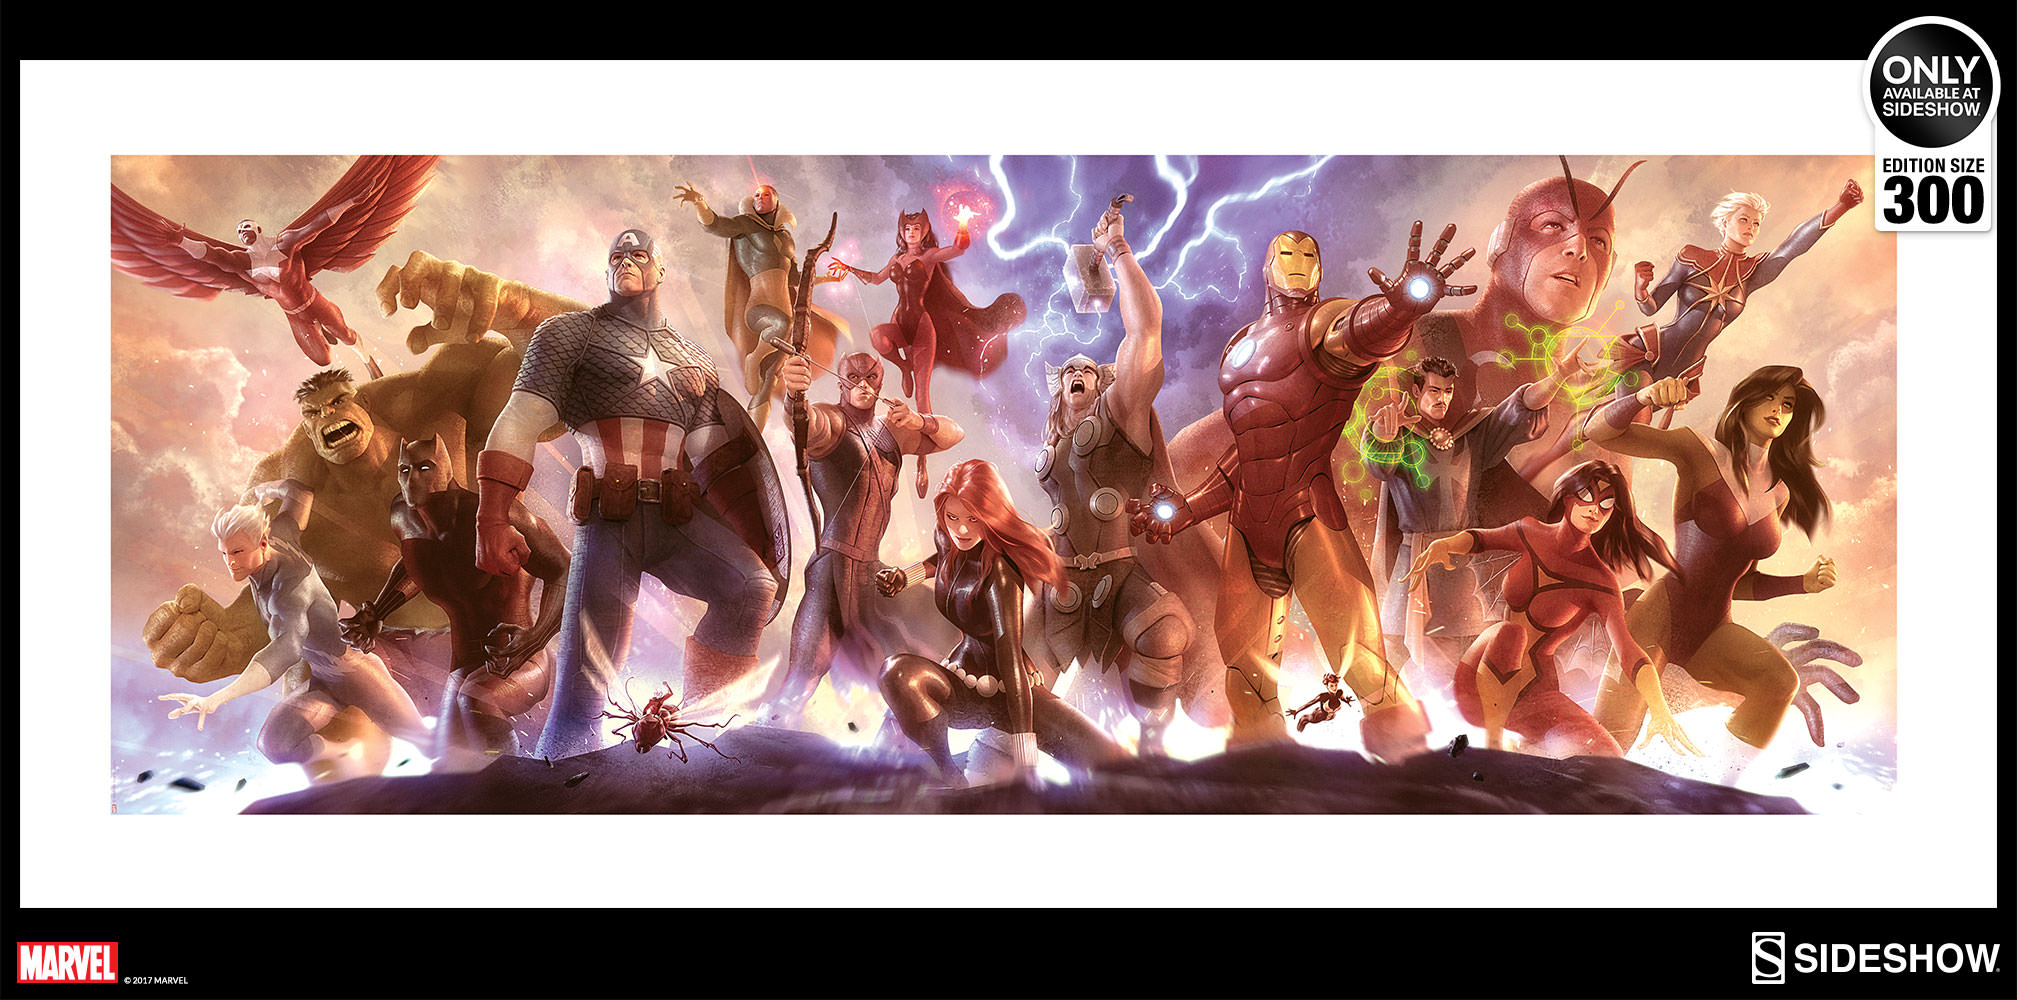 Marvel Avengers Assemble Art Print By Sideshow Collectibles